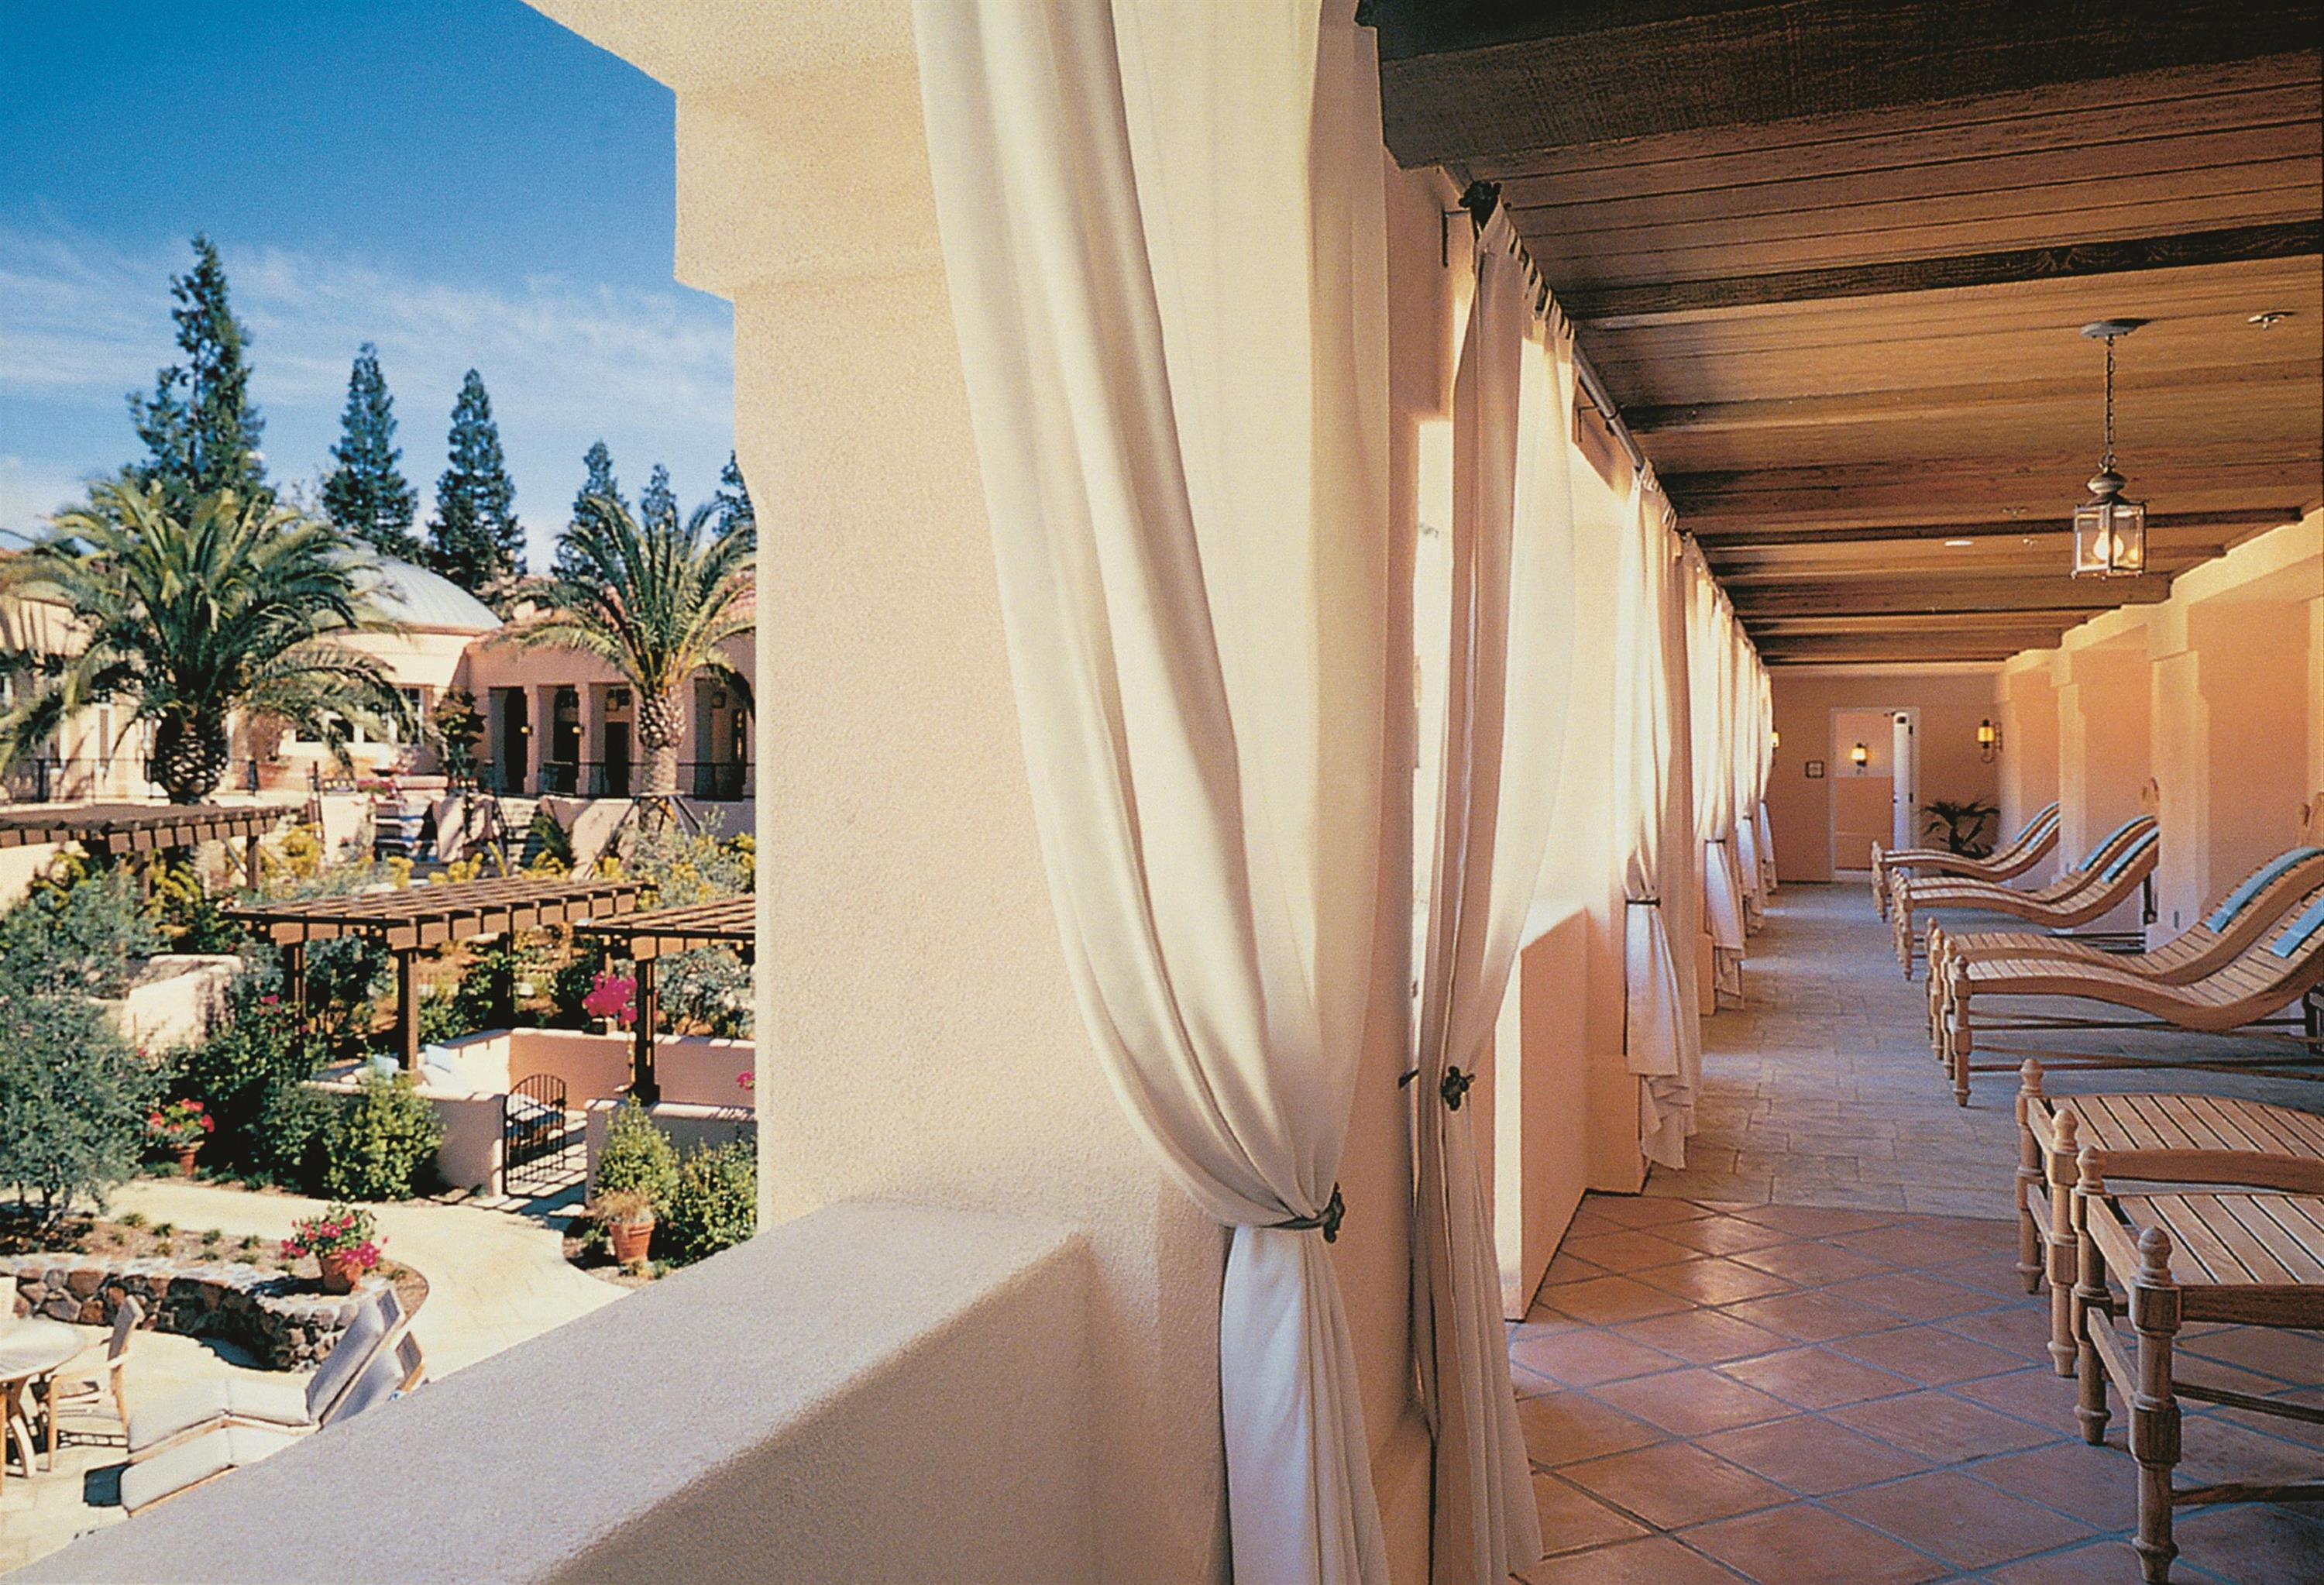 Fairmont Mission Inn and Spa, Sonoma, Sonoma County, California